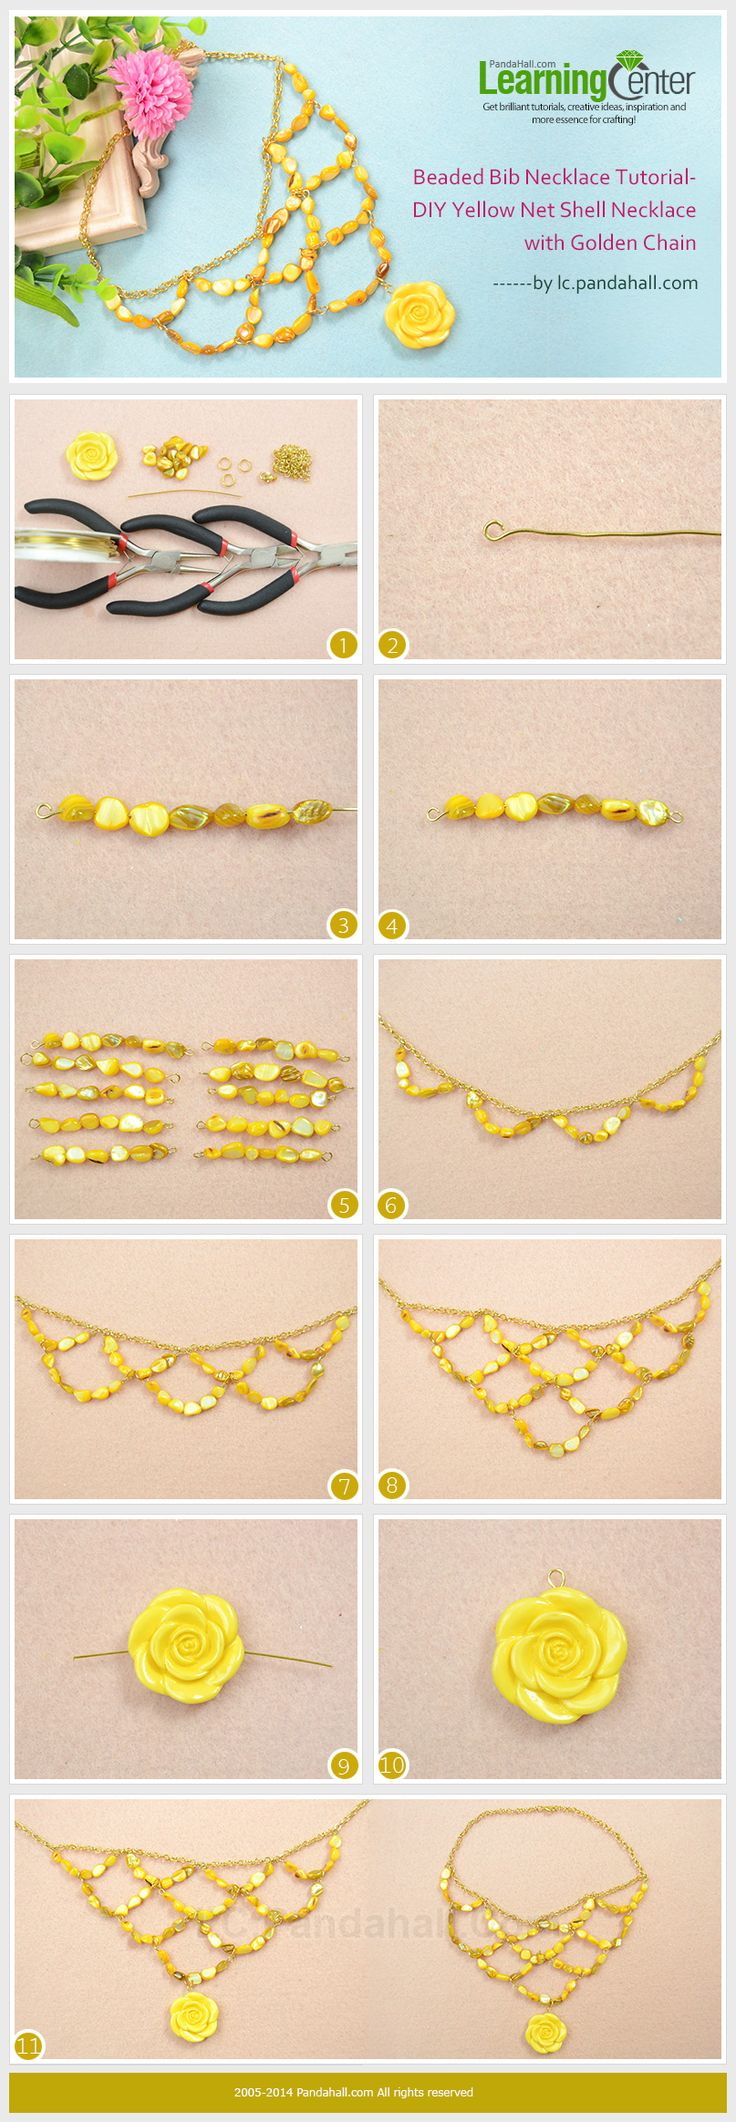 Beaded Bib Necklace Tutorial-DIY Yellow Net Shell Necklace with Golden Chain